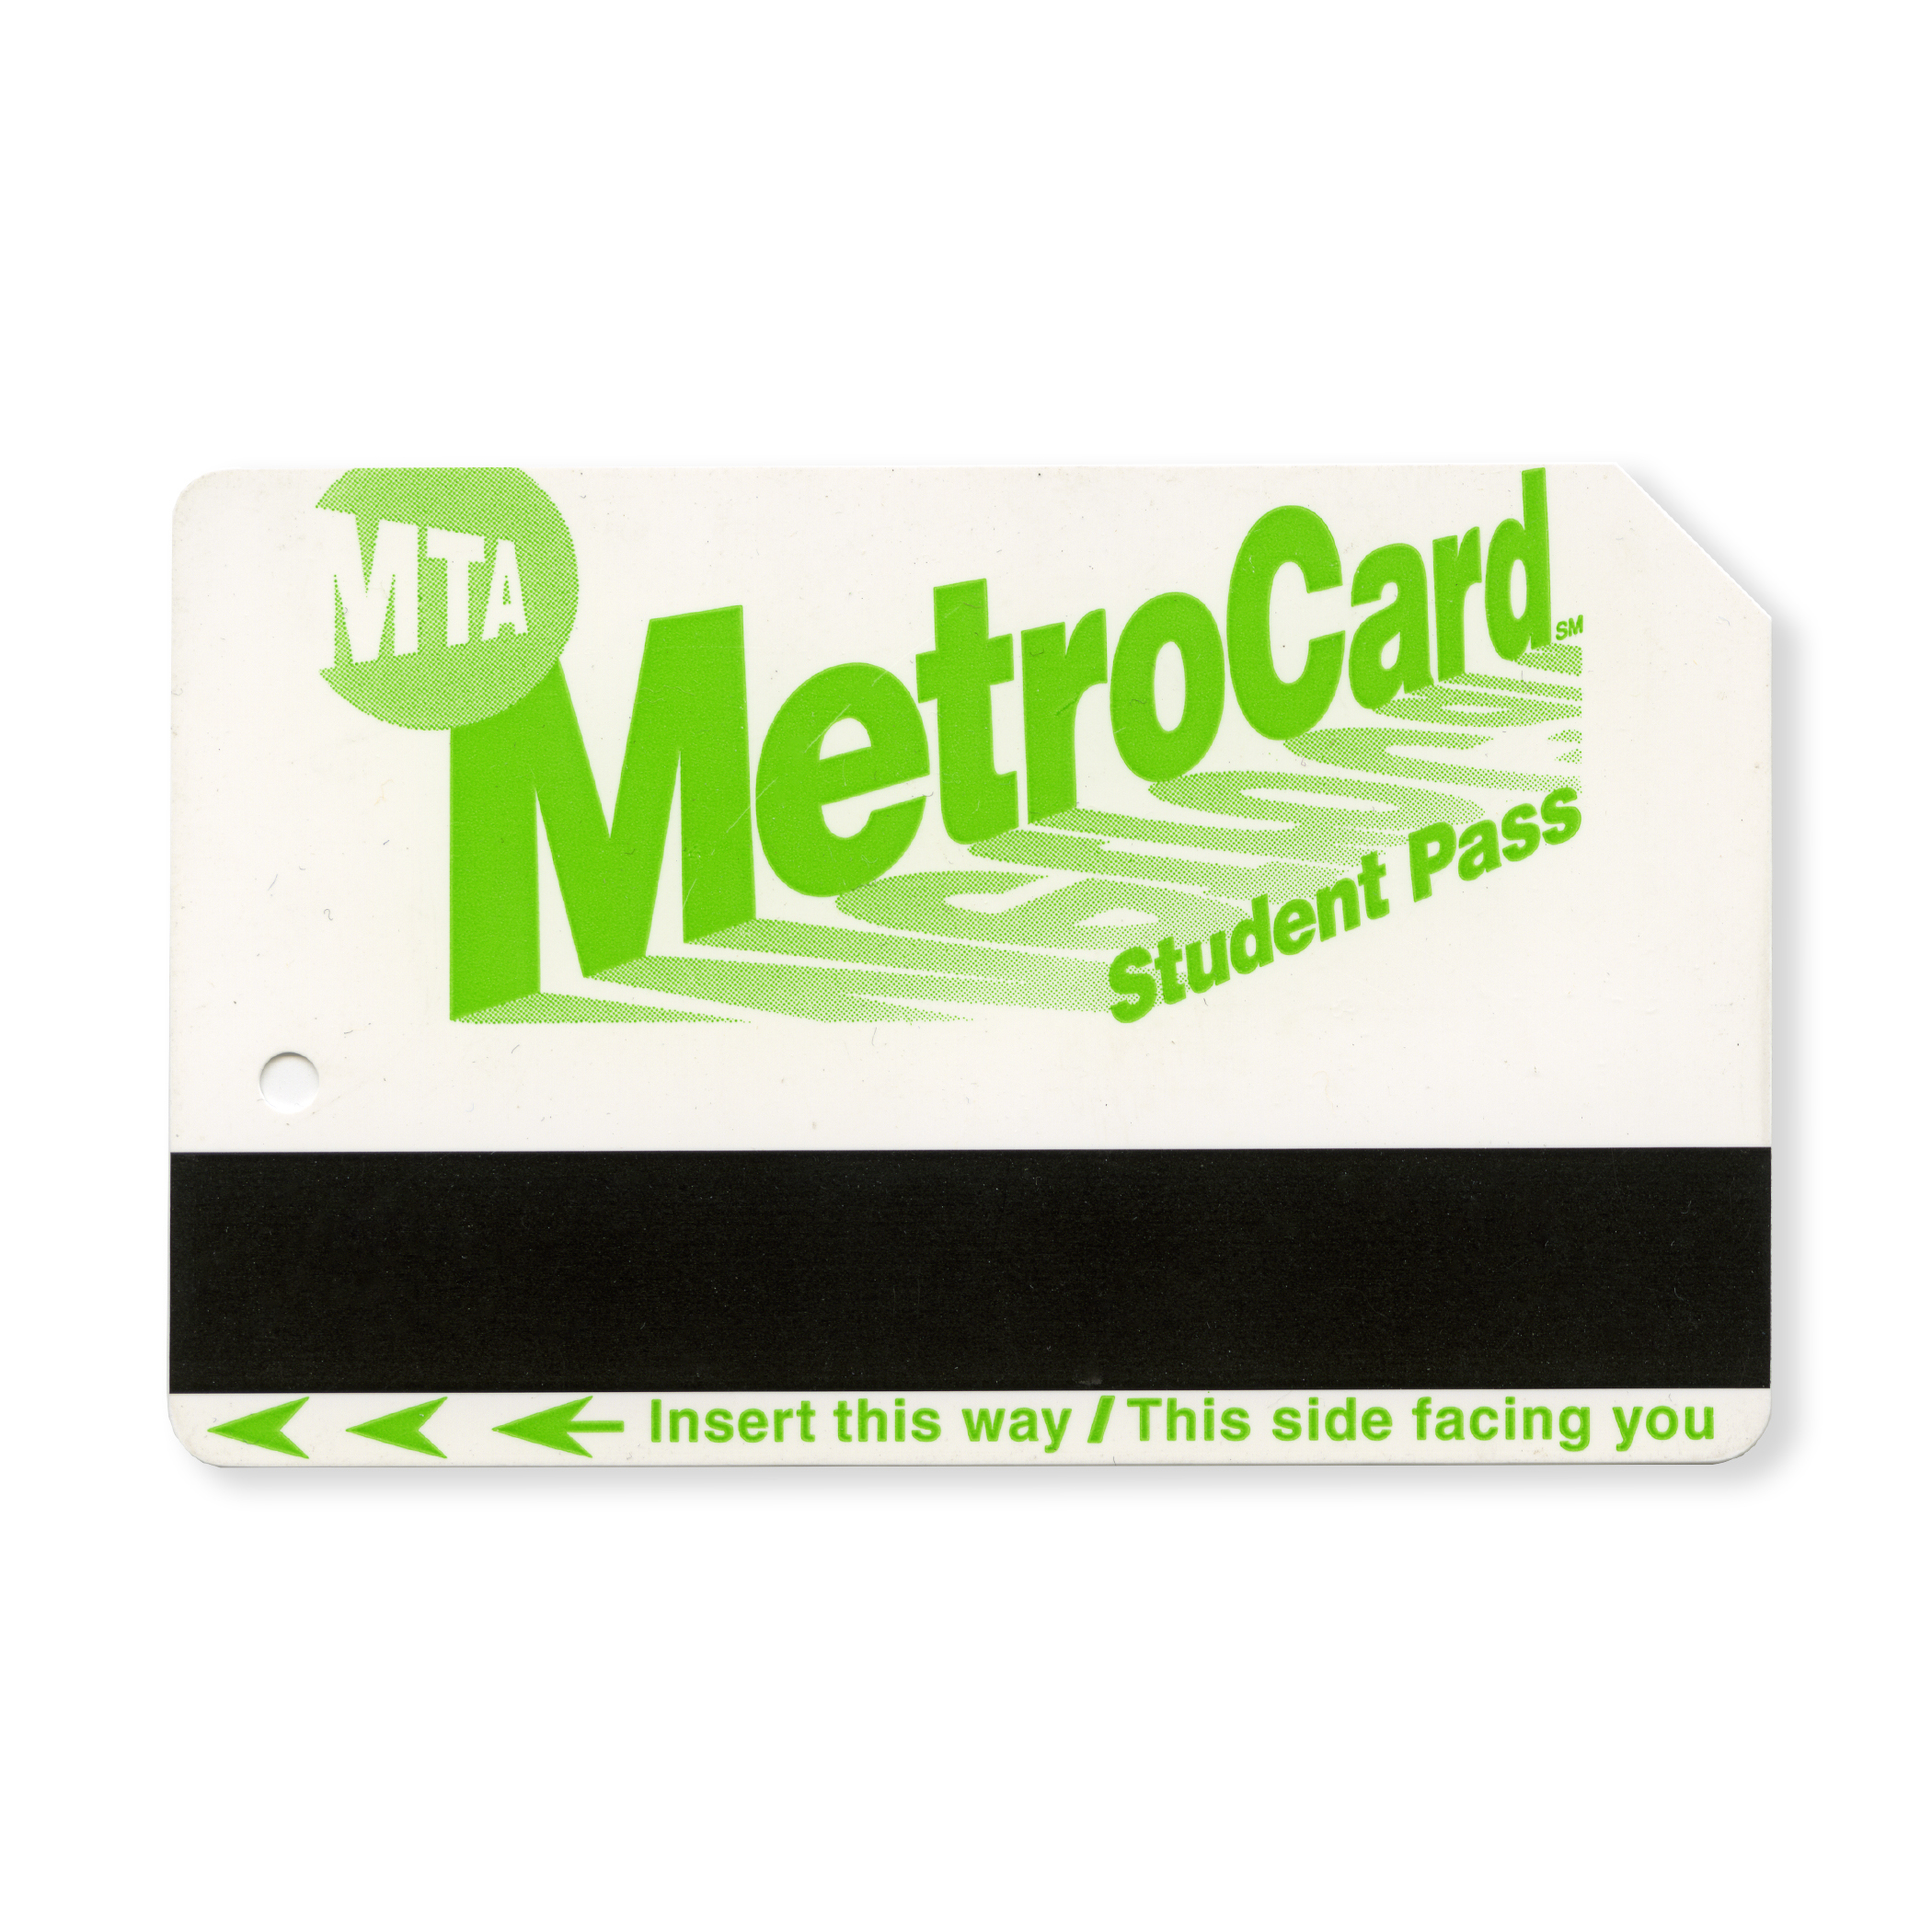 the_nycta_project_2013_student_metrocard_front.jpg